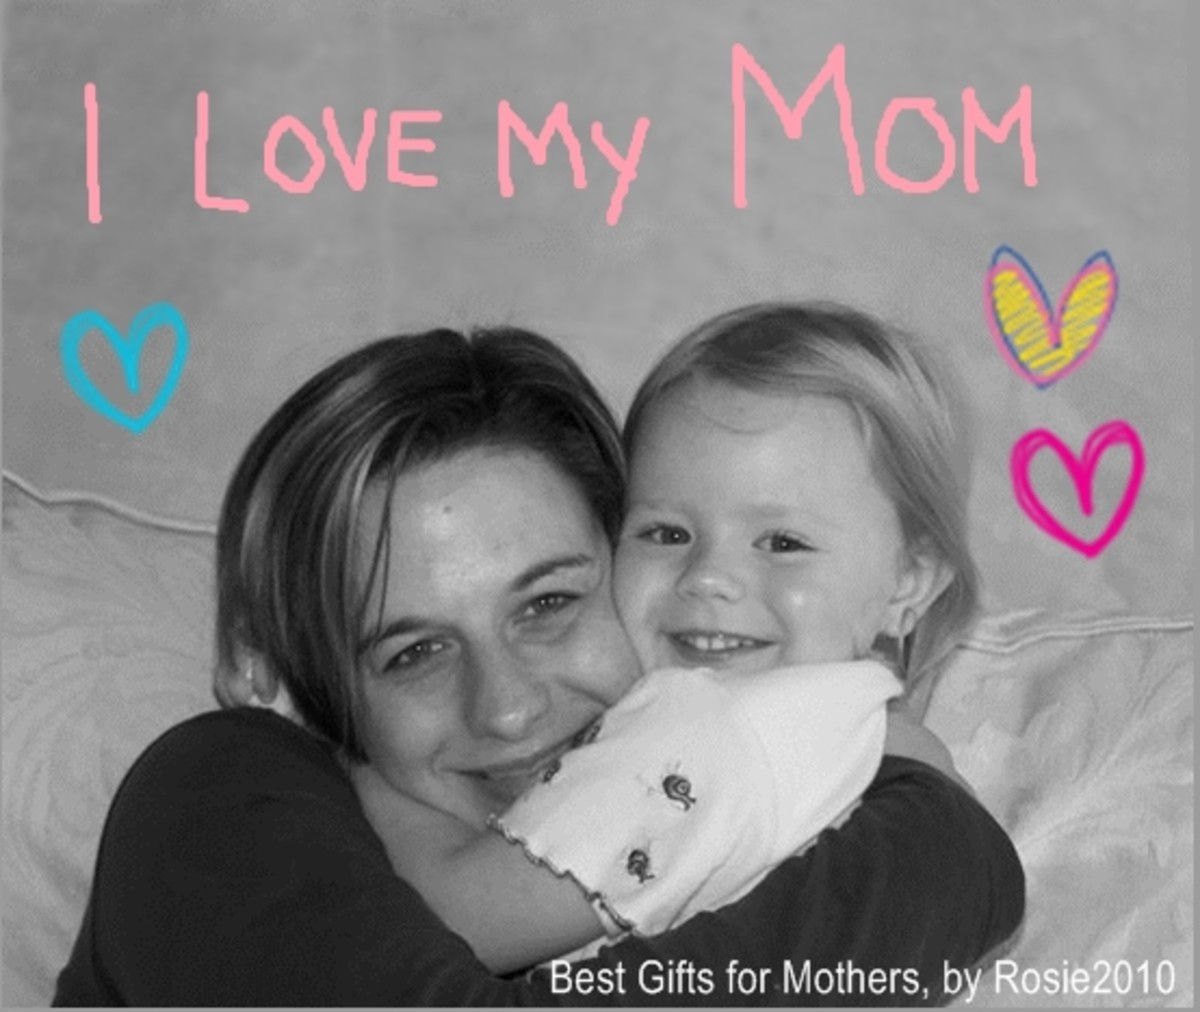 2013 Best Gifts for Mothers - Gift Ideas under $100 dollars, by Rosie2010